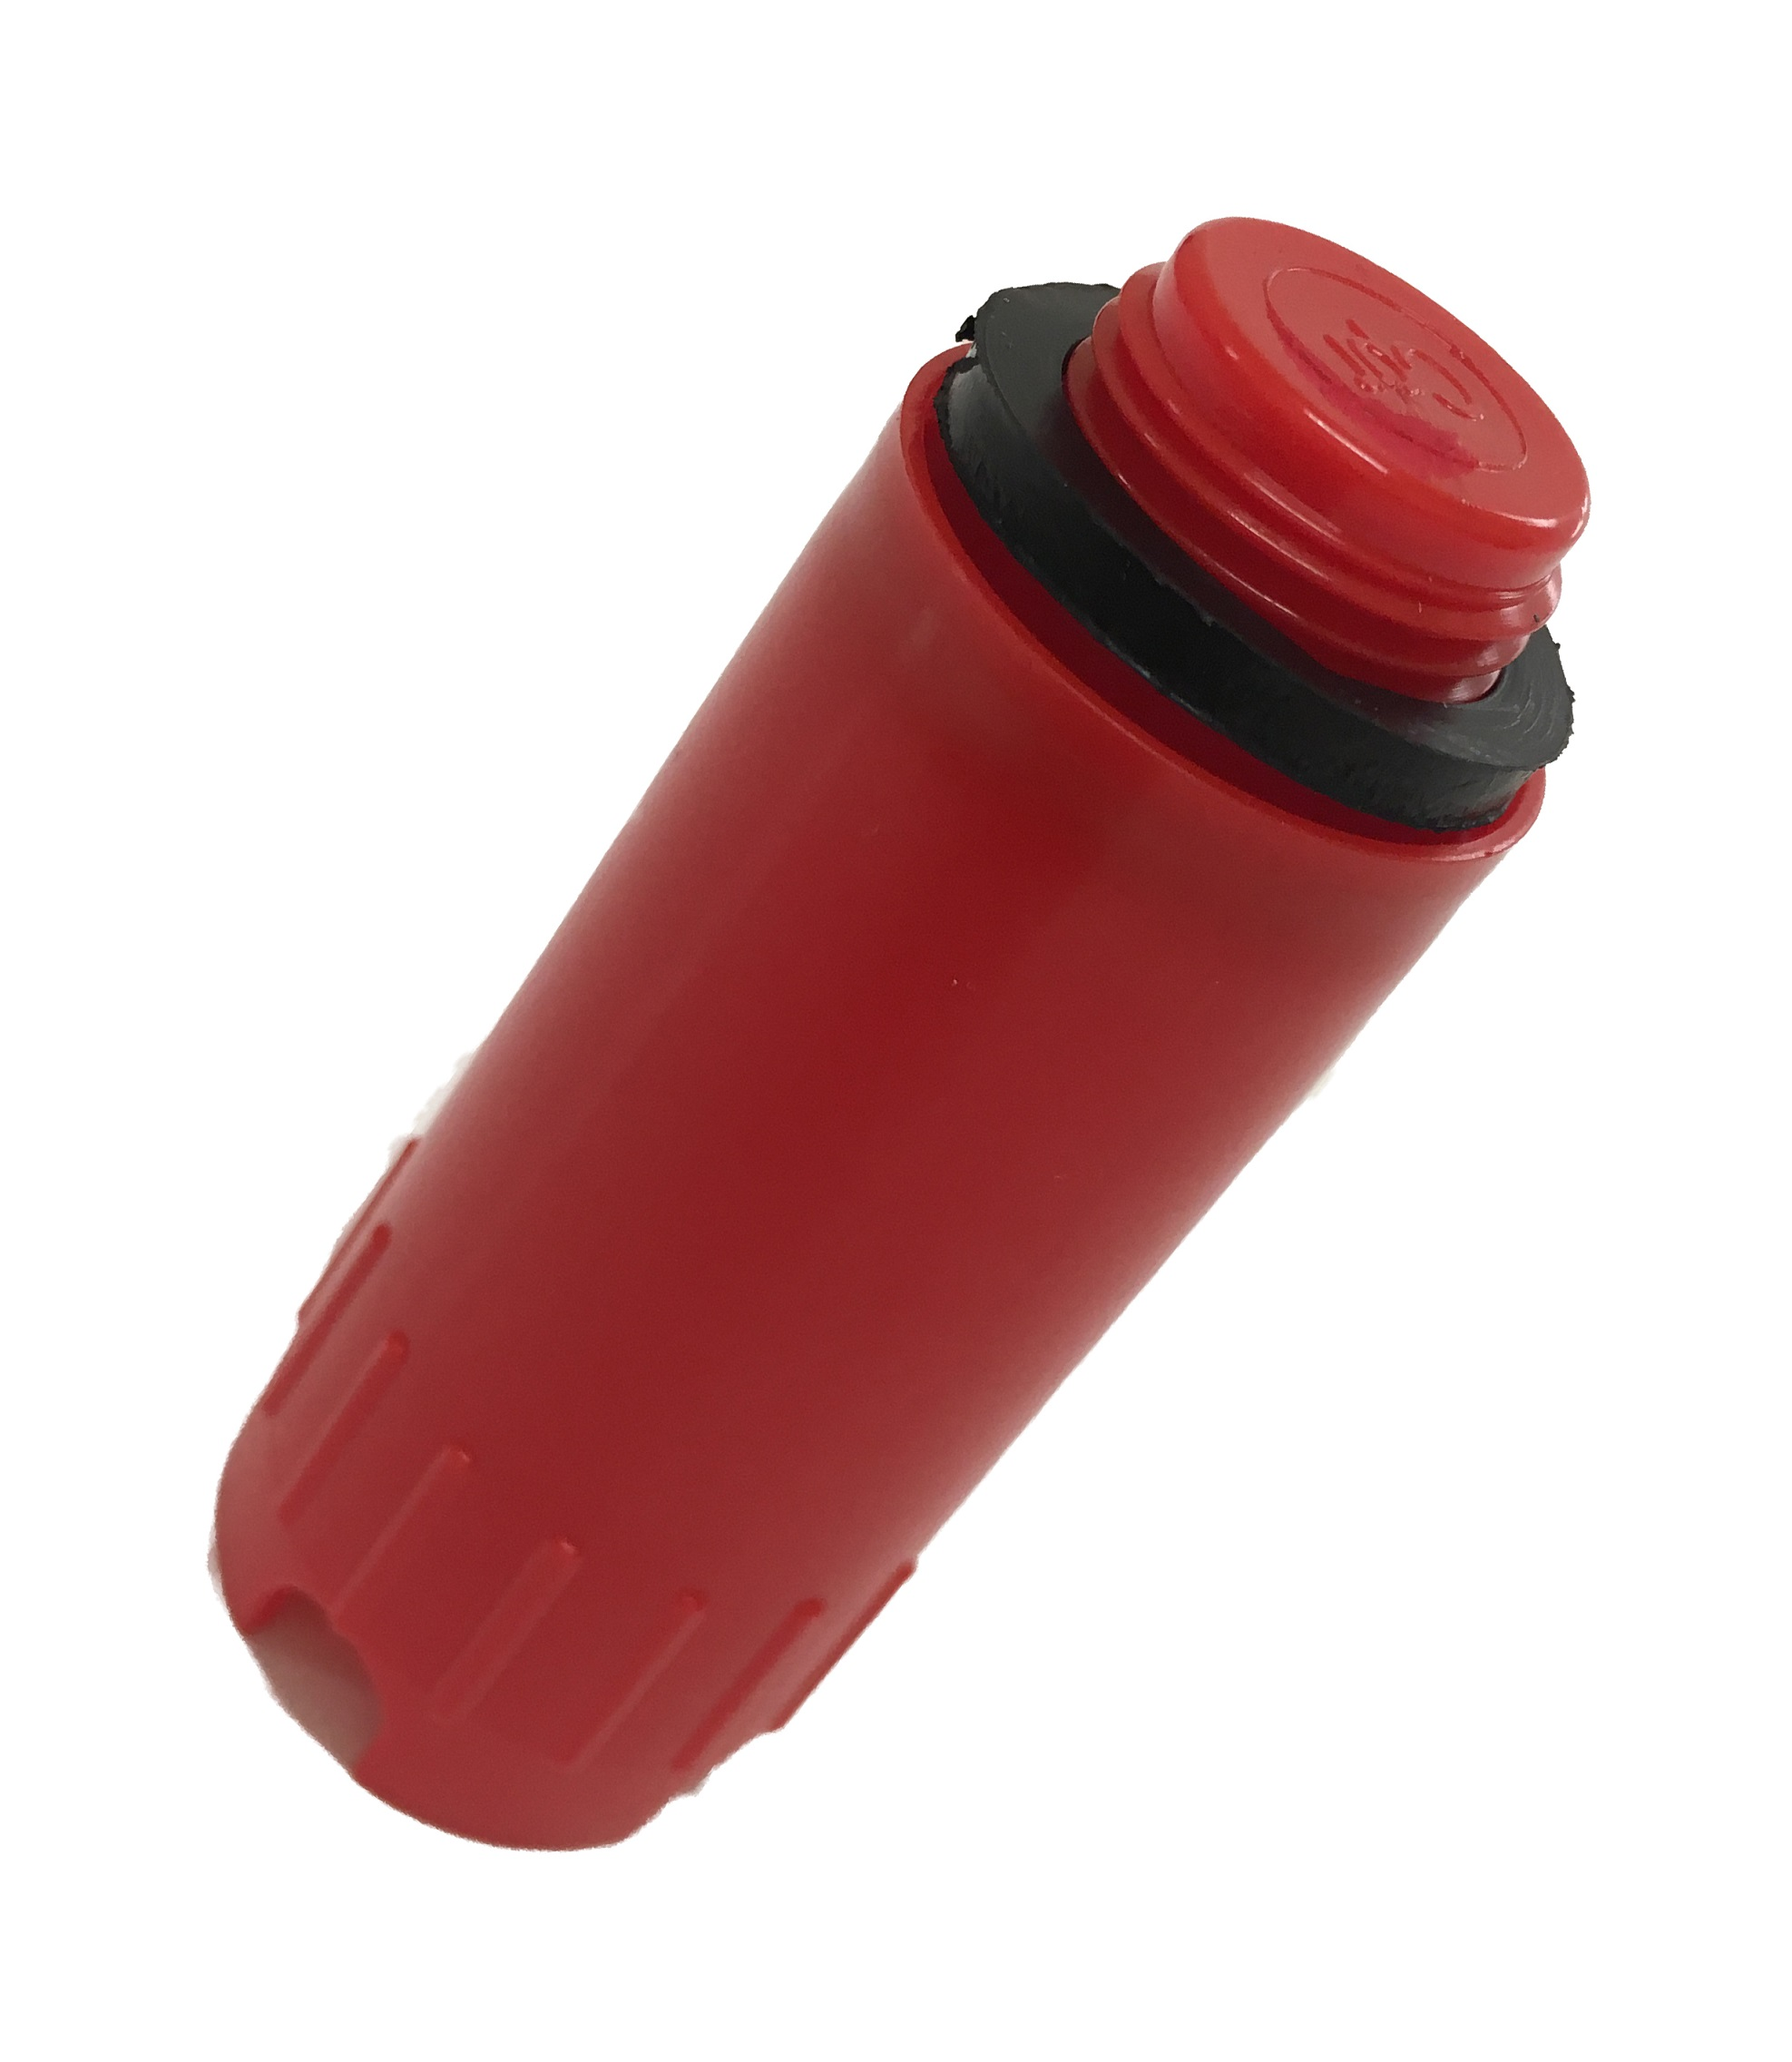 Test plug 1/2M with oring - Red